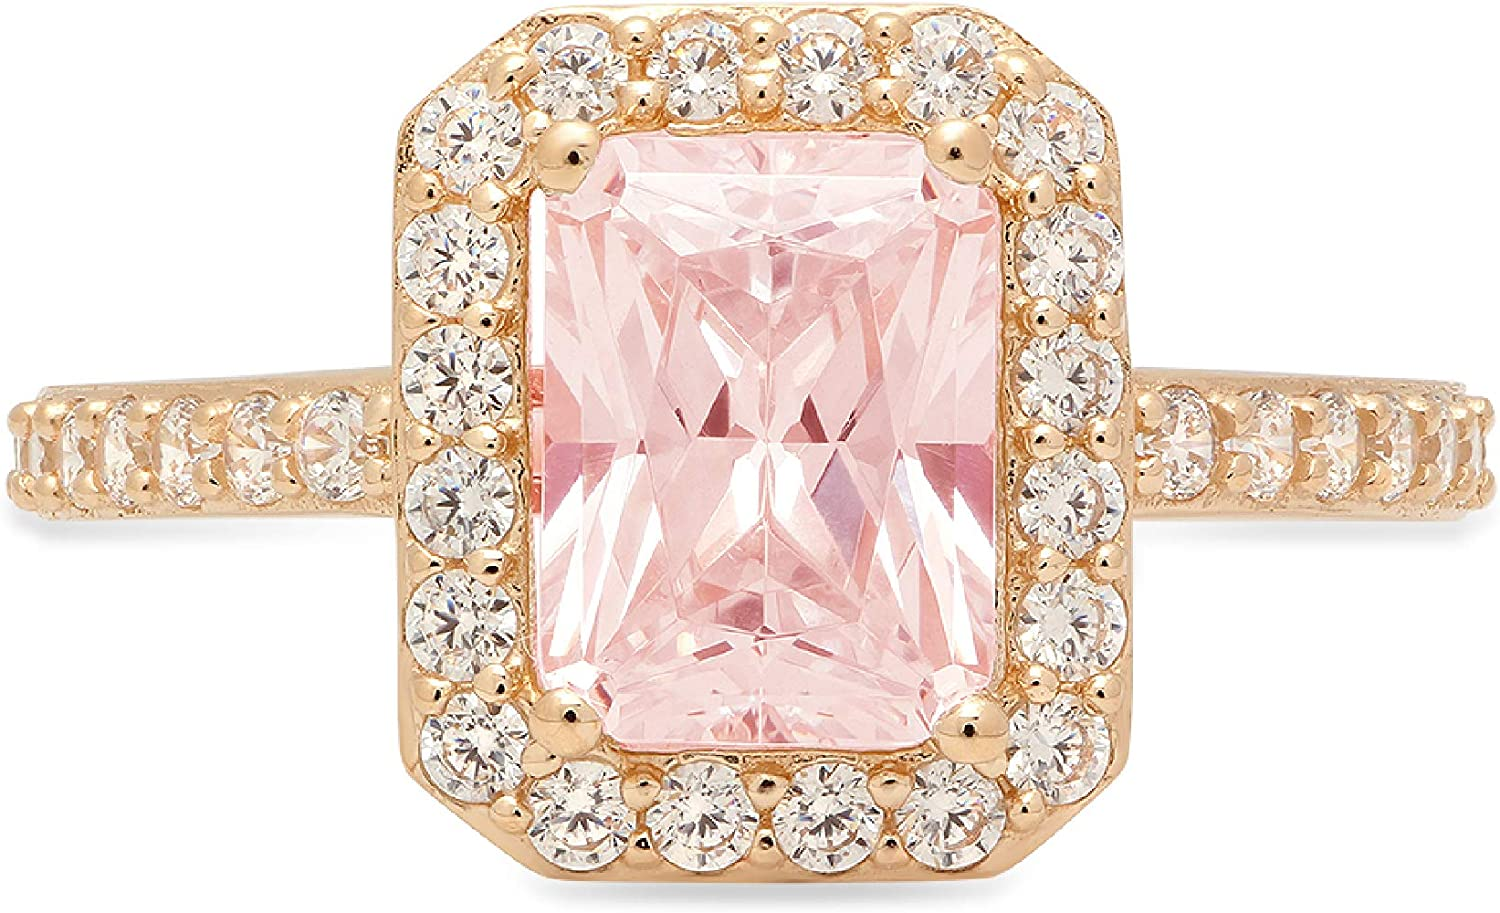 2.01ct Brilliant Emerald Cut Solitaire with Accent Halo Pink Ideal VVS1 Simulated Diamond CZ Engagement Promise Statement Anniversary Bridal Wedding Ring 14k Yellow Gold